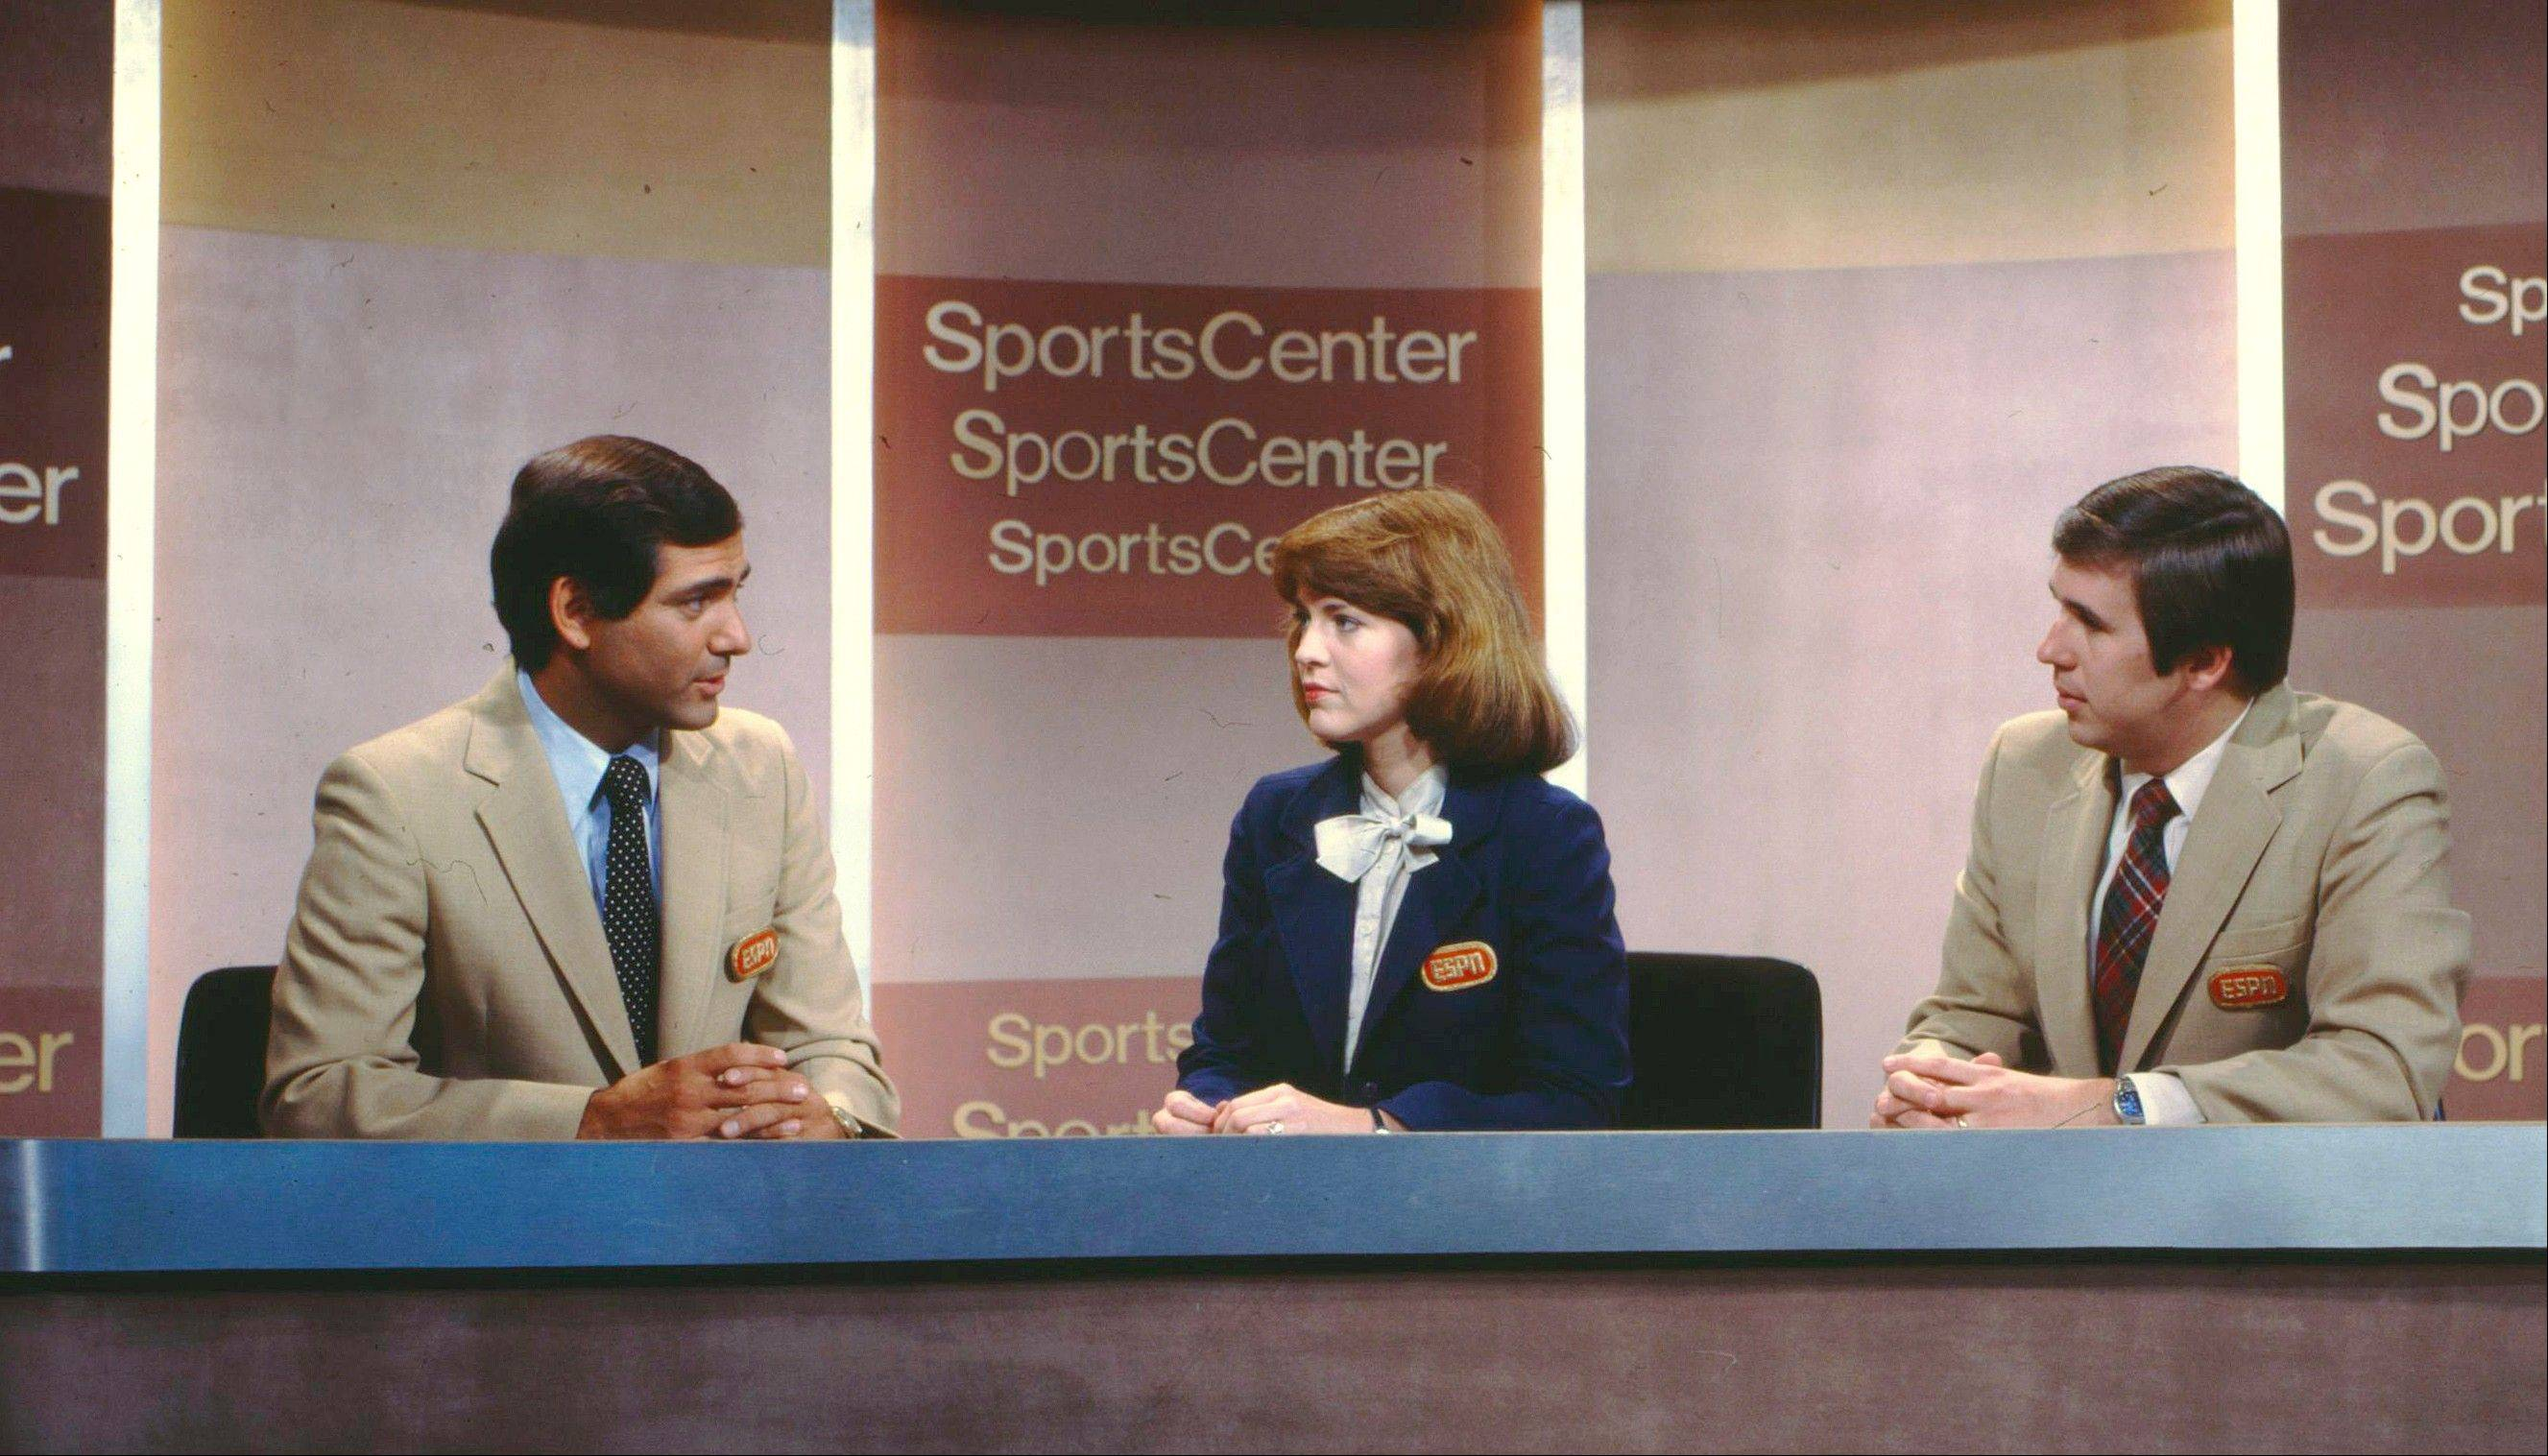 George Grande, left, Sharon Smith and Bob Ley were just a few of the first broadcasters on ESPN�s SportsCenter back in 1981. On Thursday, ESPN will air its 50,000th SportsCenter, the network�s flagship show of highlights, news and analysis that has had a major impact on the nation�s sports culture.